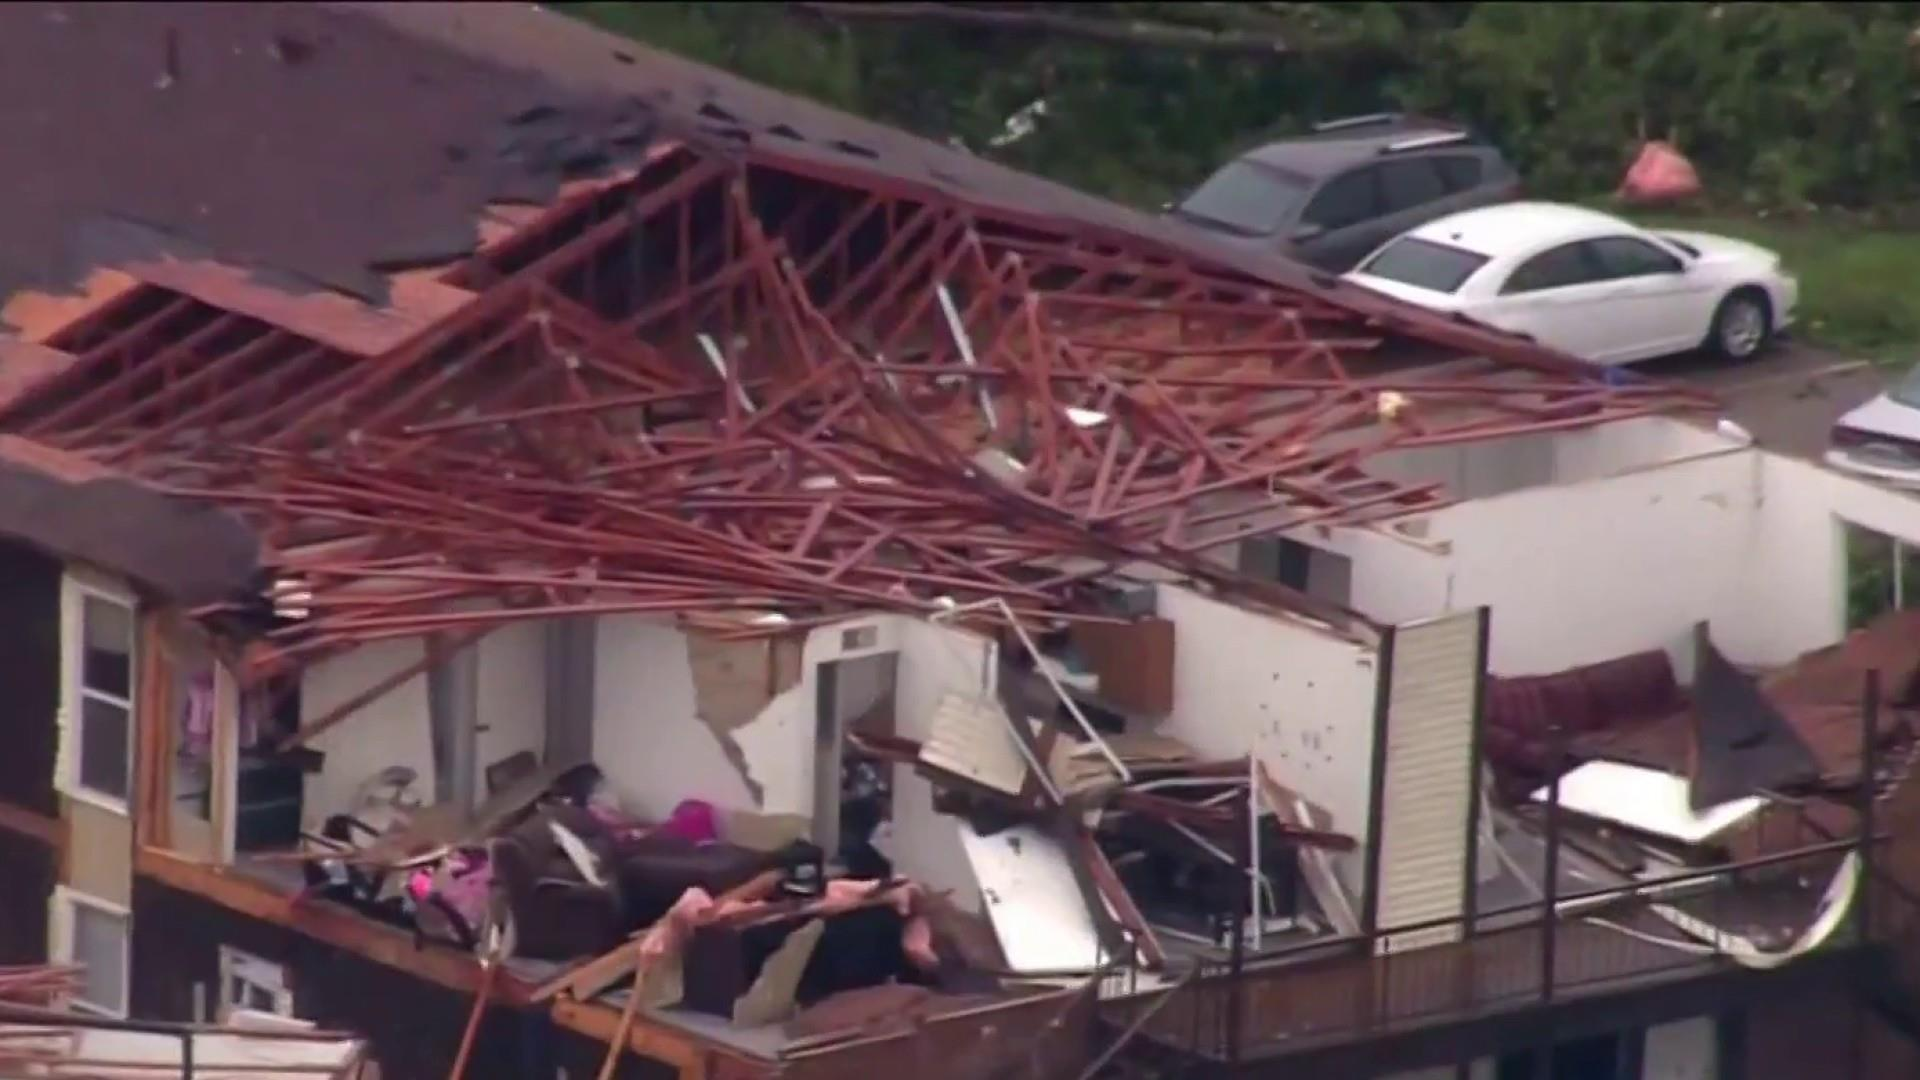 Tornadoes that hit Jefferson City and killed 3 in Missouri registered as EF-3